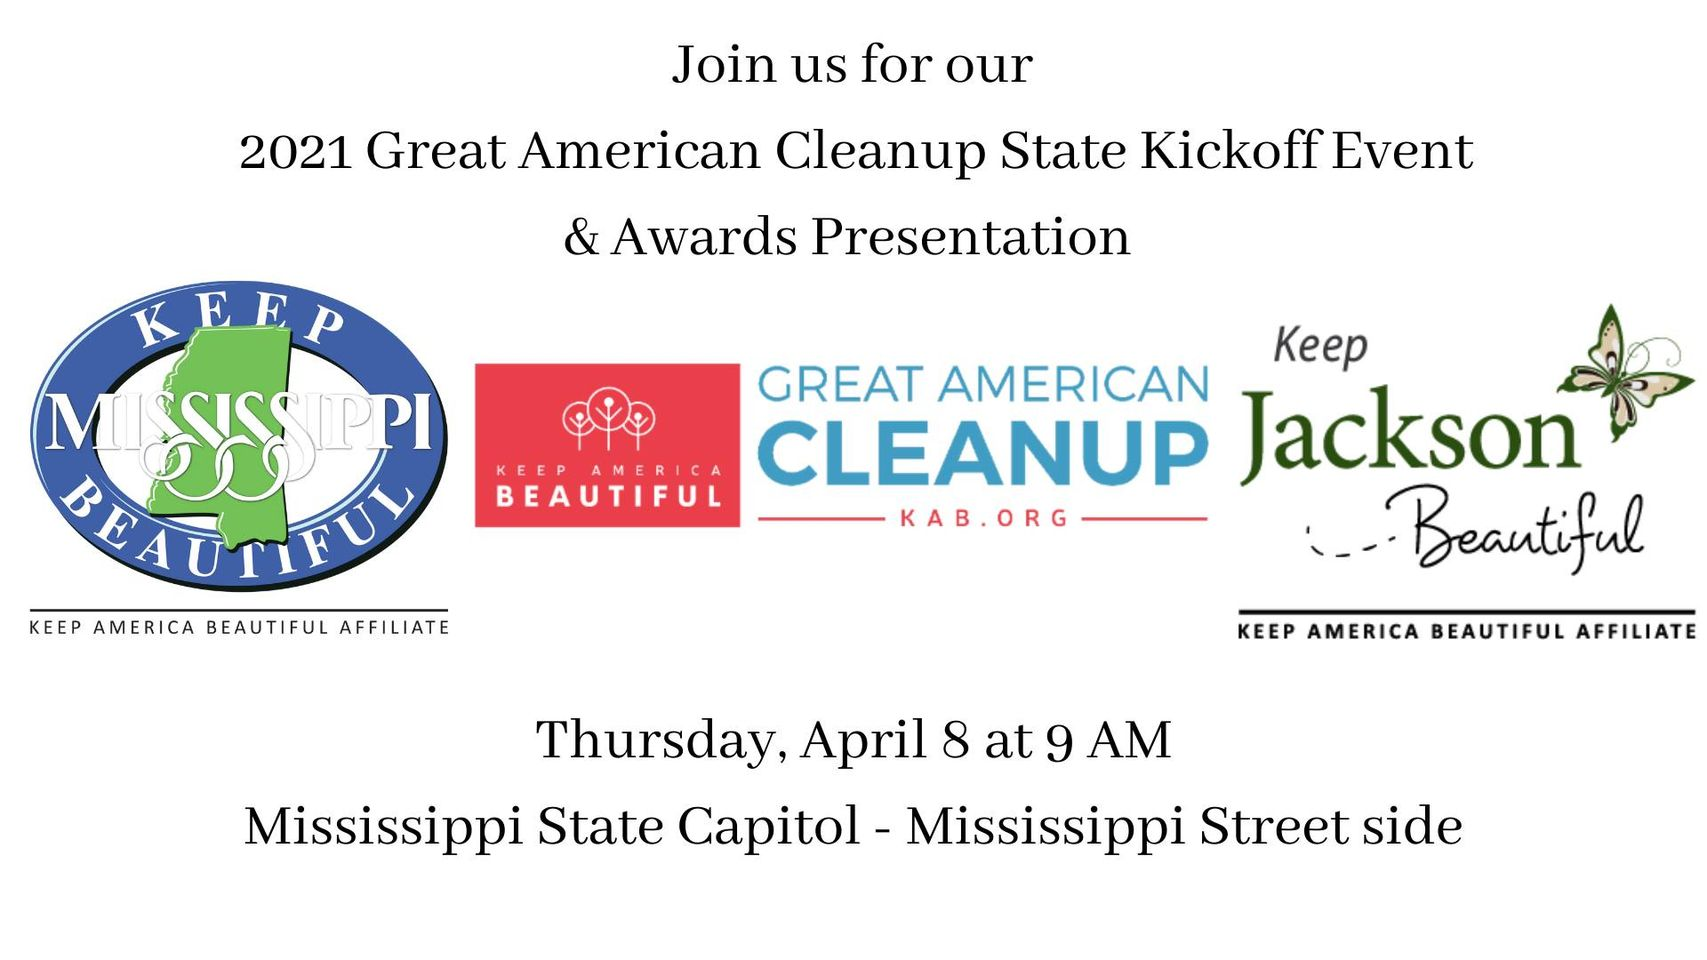 2021 Great American Cleanup State Kickoff & Awards Presentation